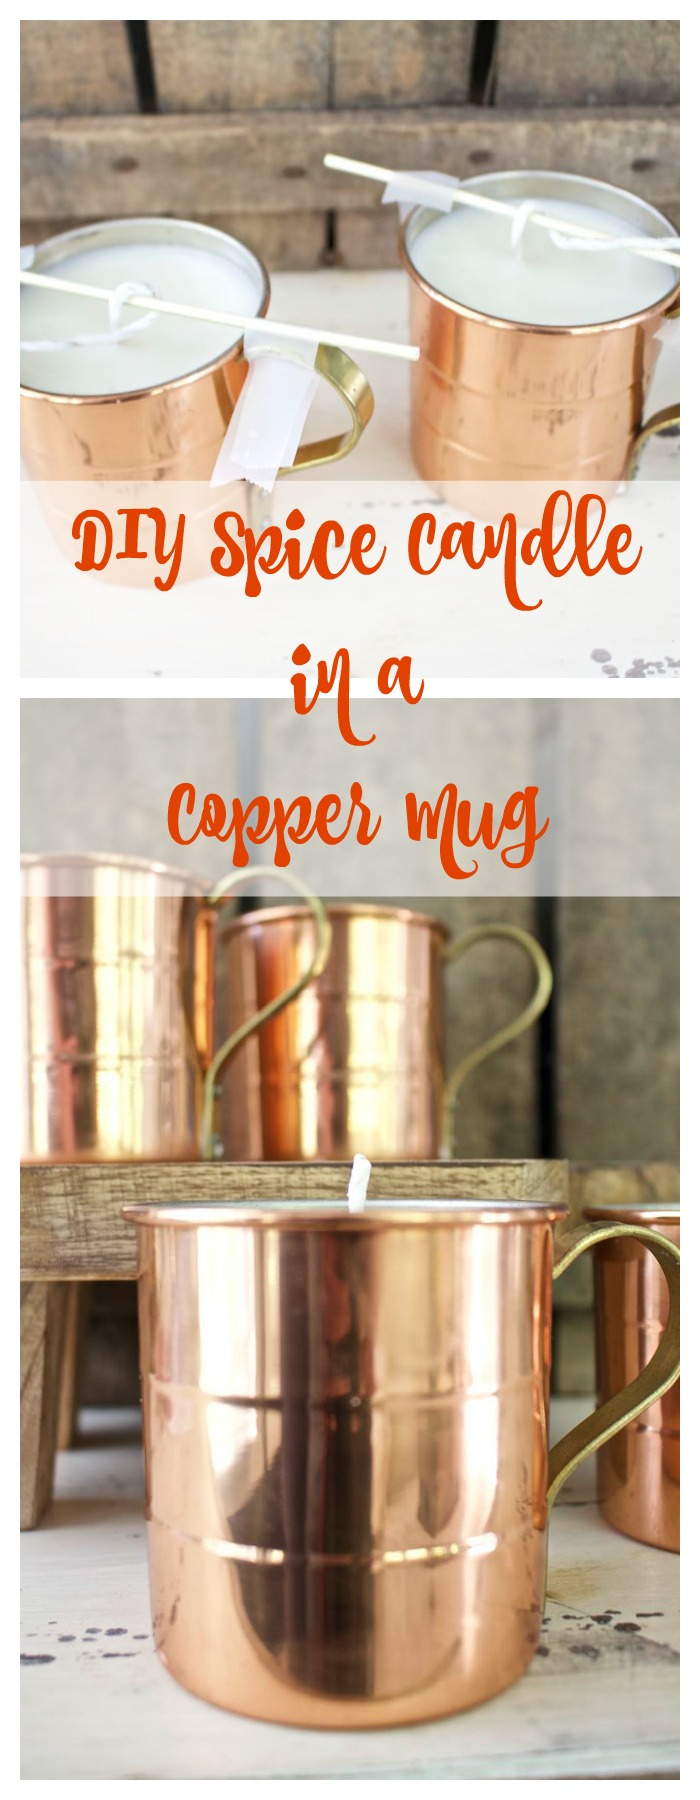 diy-spice-candle-in-a-copper-mug-collage